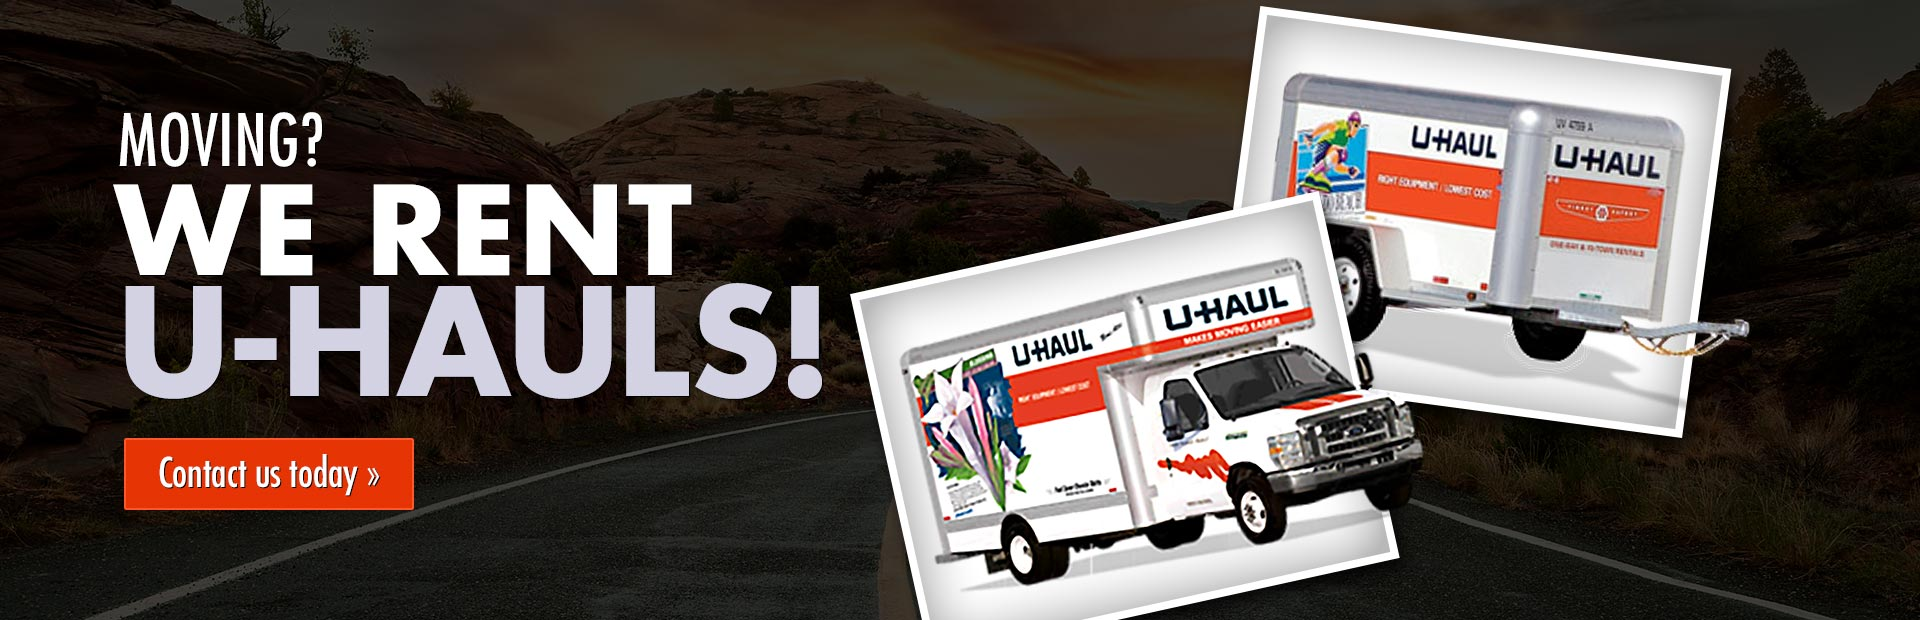 We rent U-Hauls! Contact us for details.